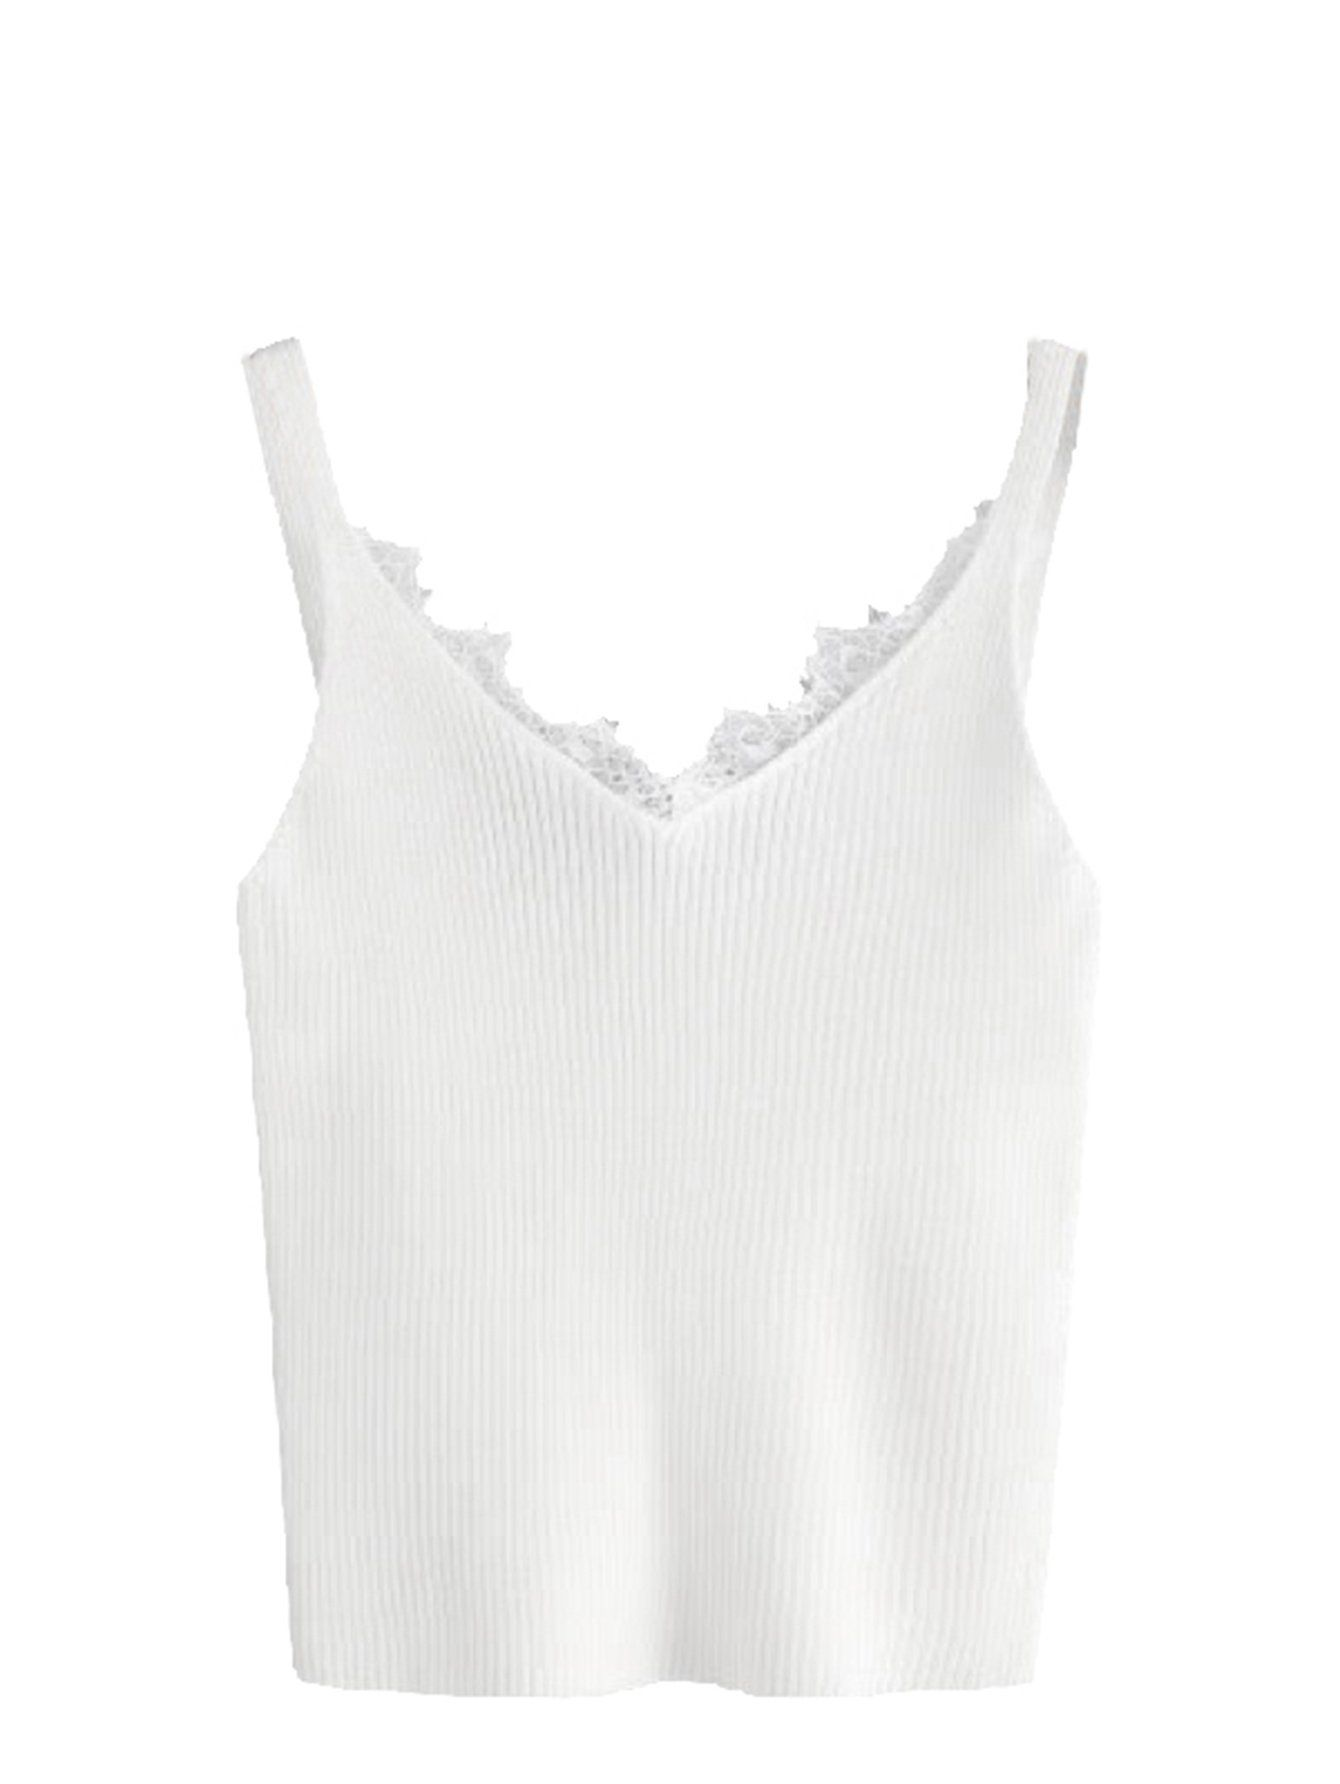 8979223bb06dd9 MakeMeChic Women V Neck Lace Trim Sleeveless Knit Cami Tank Crop Top 2  OneSize White   You can find out more details at the link of the image.